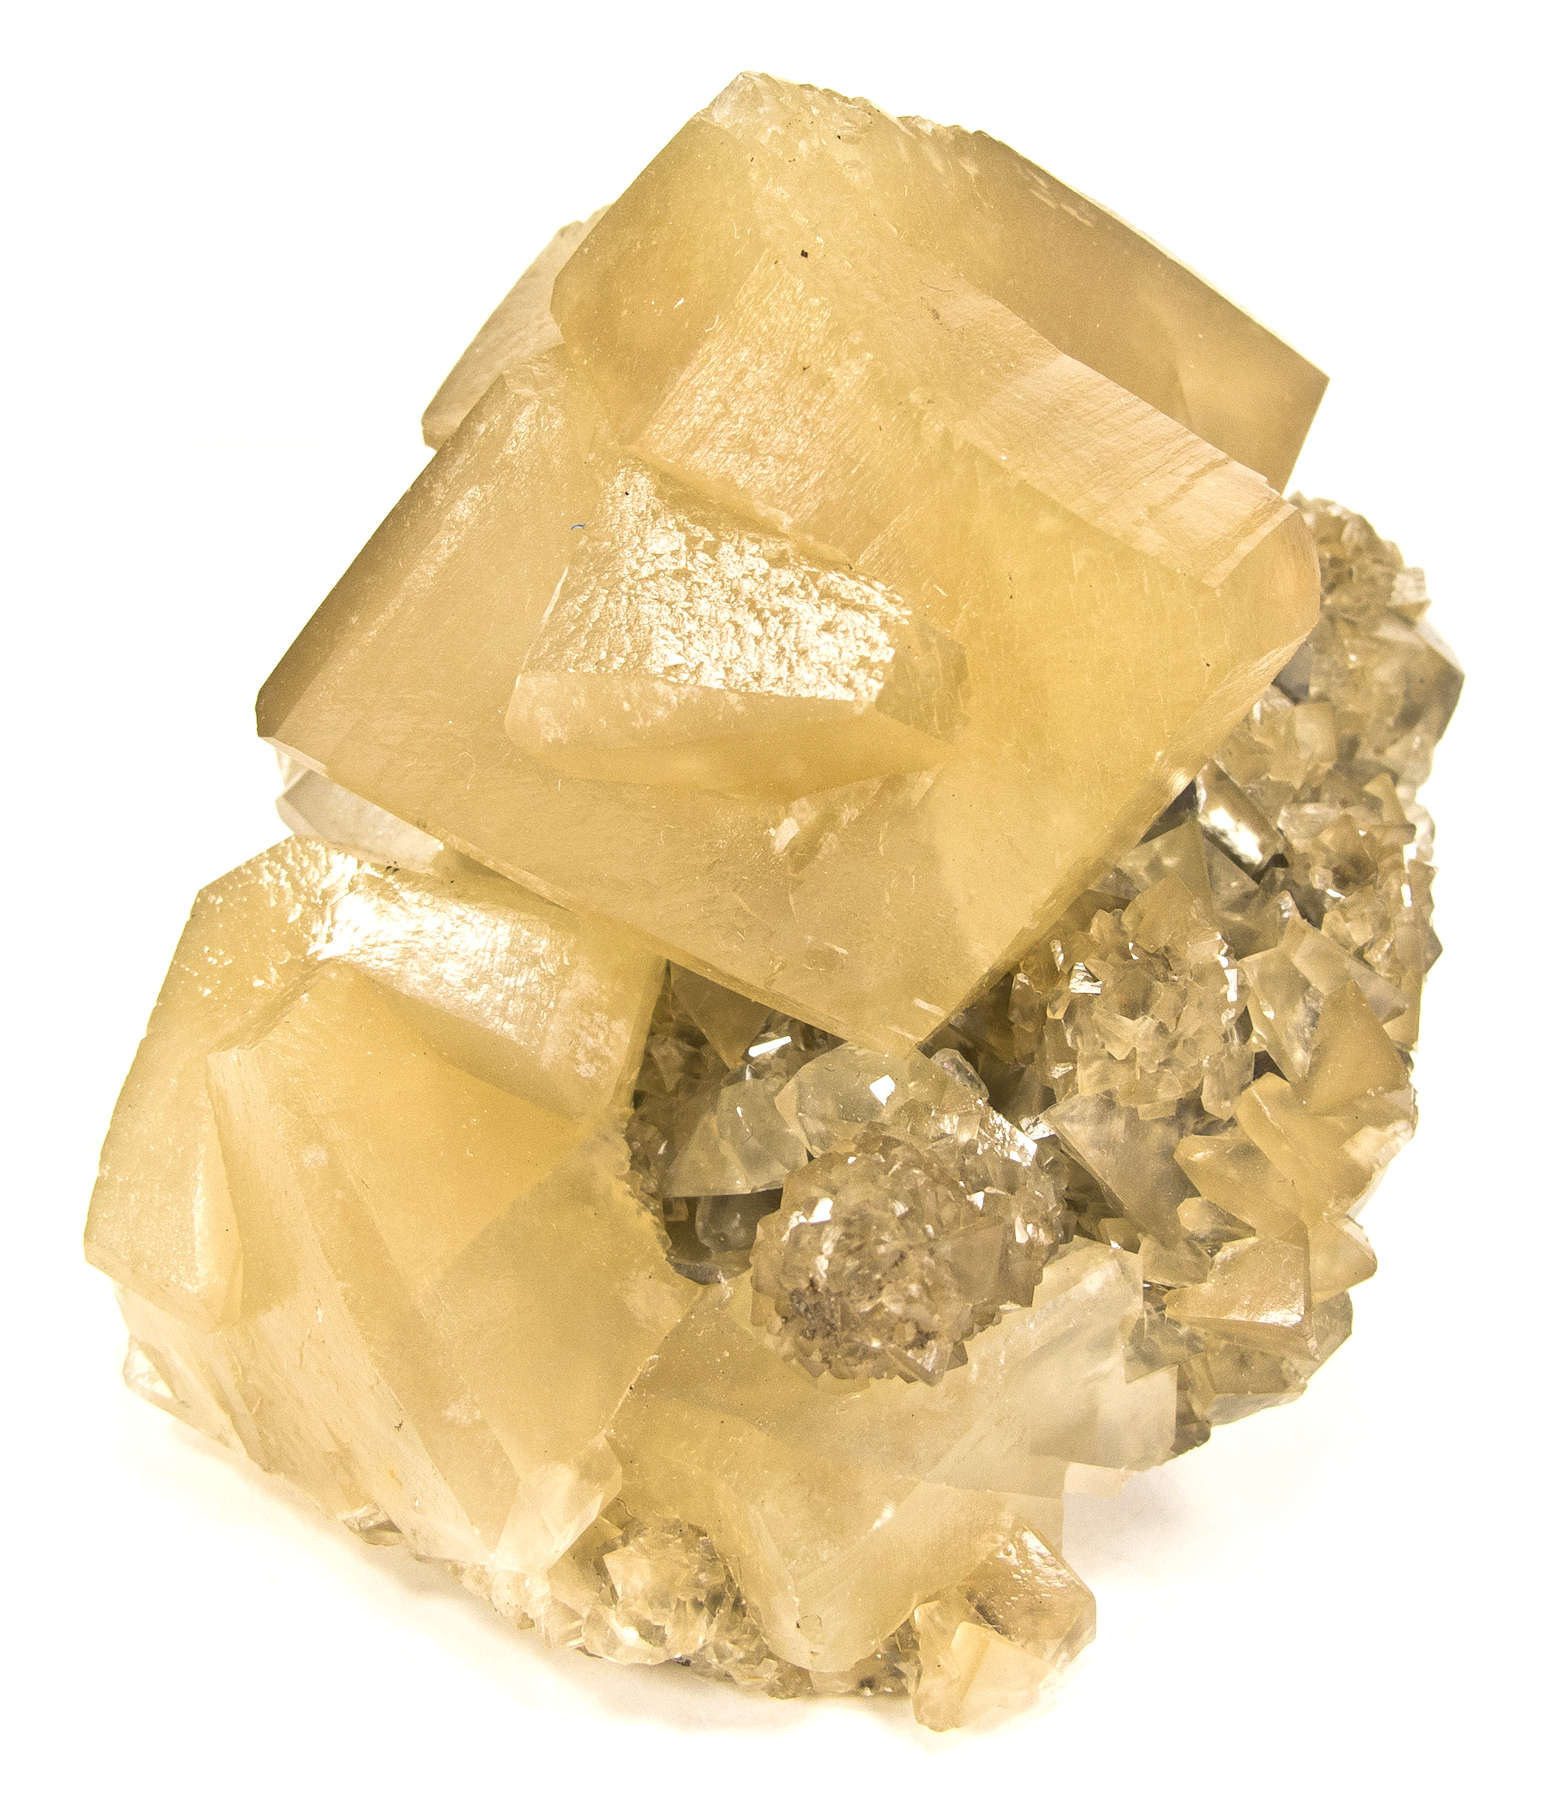 Emplaced matrix SHARP waxy translucent tan colored calcite rhombs 4 5